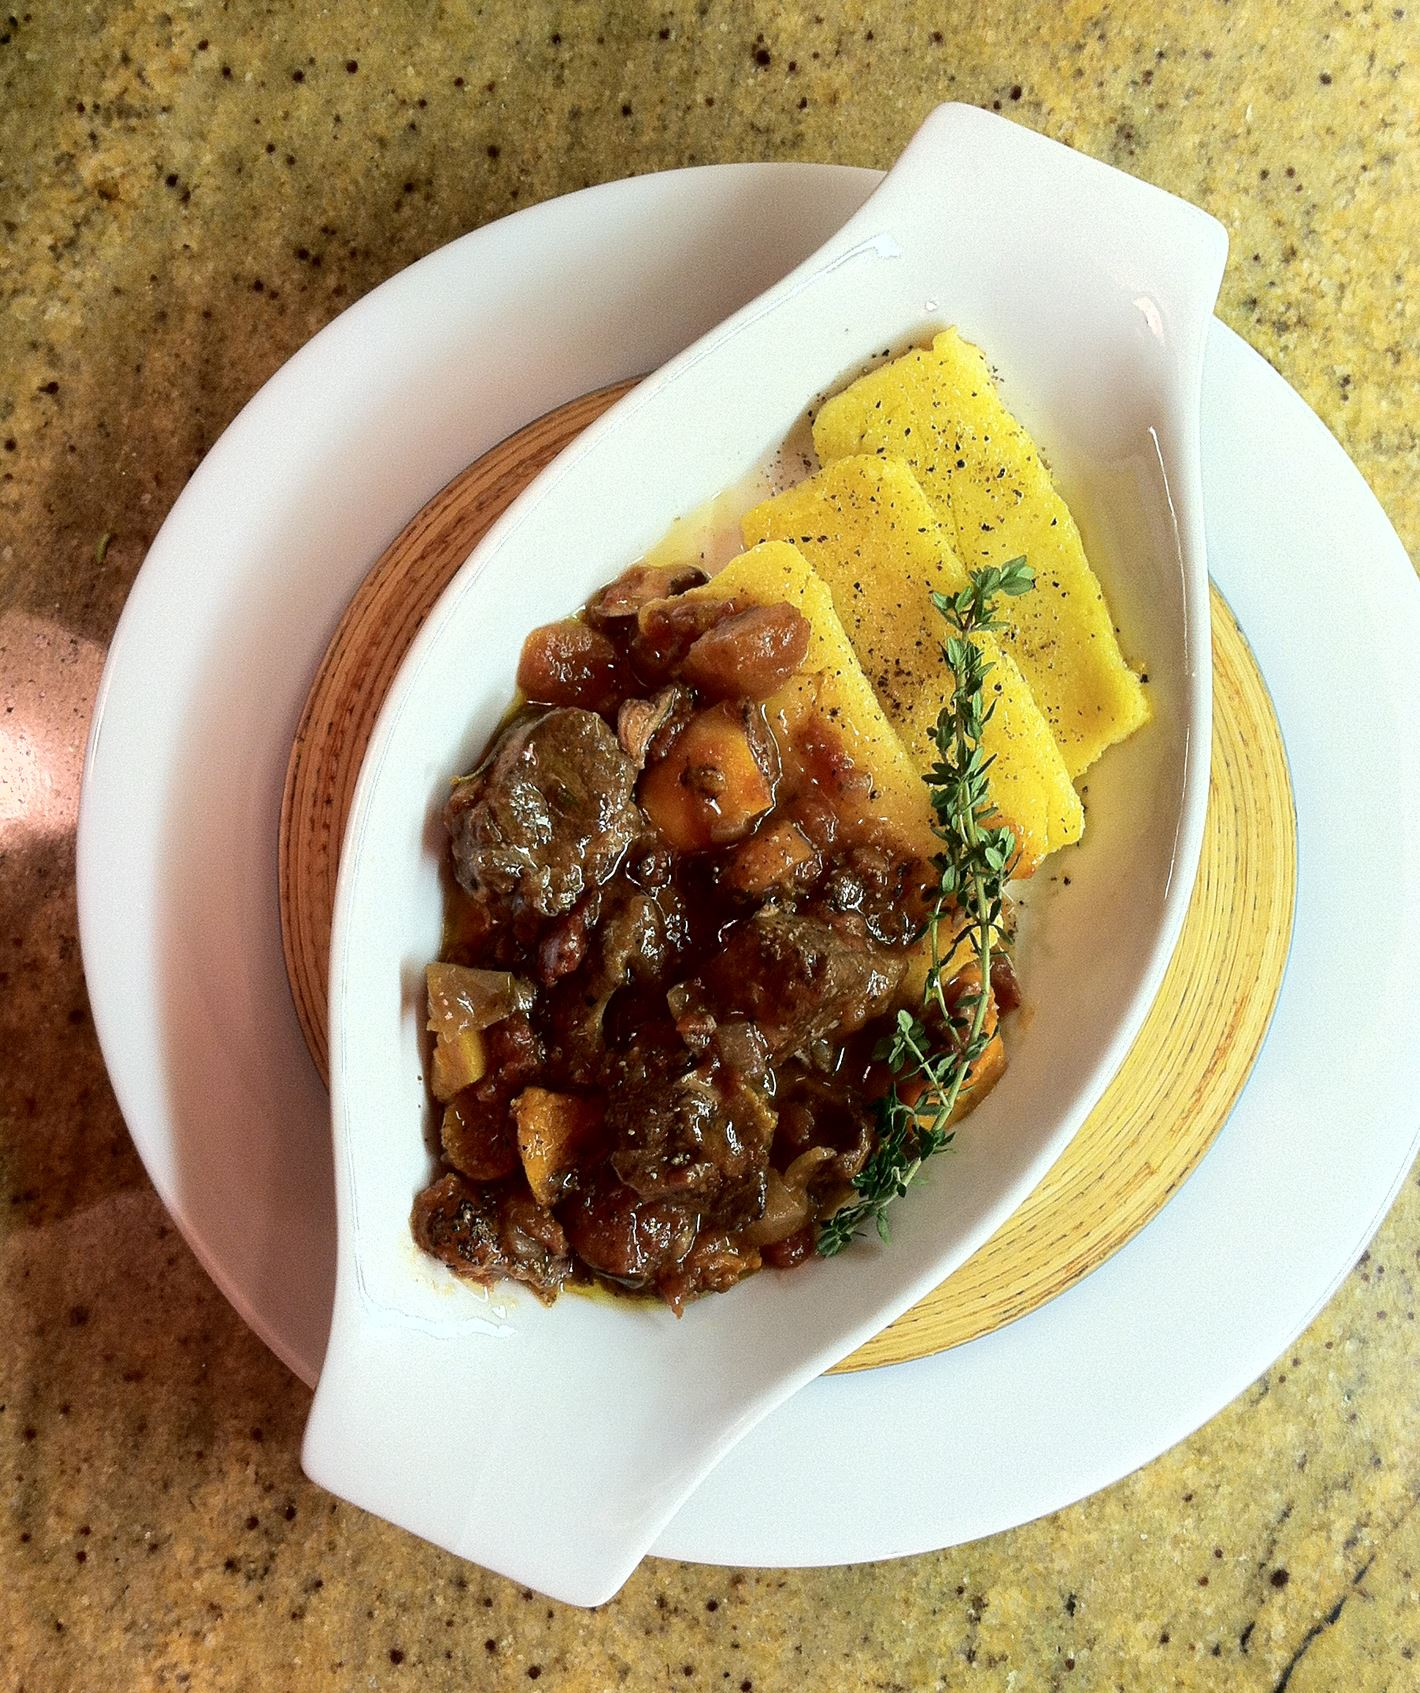 20131201ho_Lamb_food Lamb Shoulder Stew with Butternut Squash and polenta.